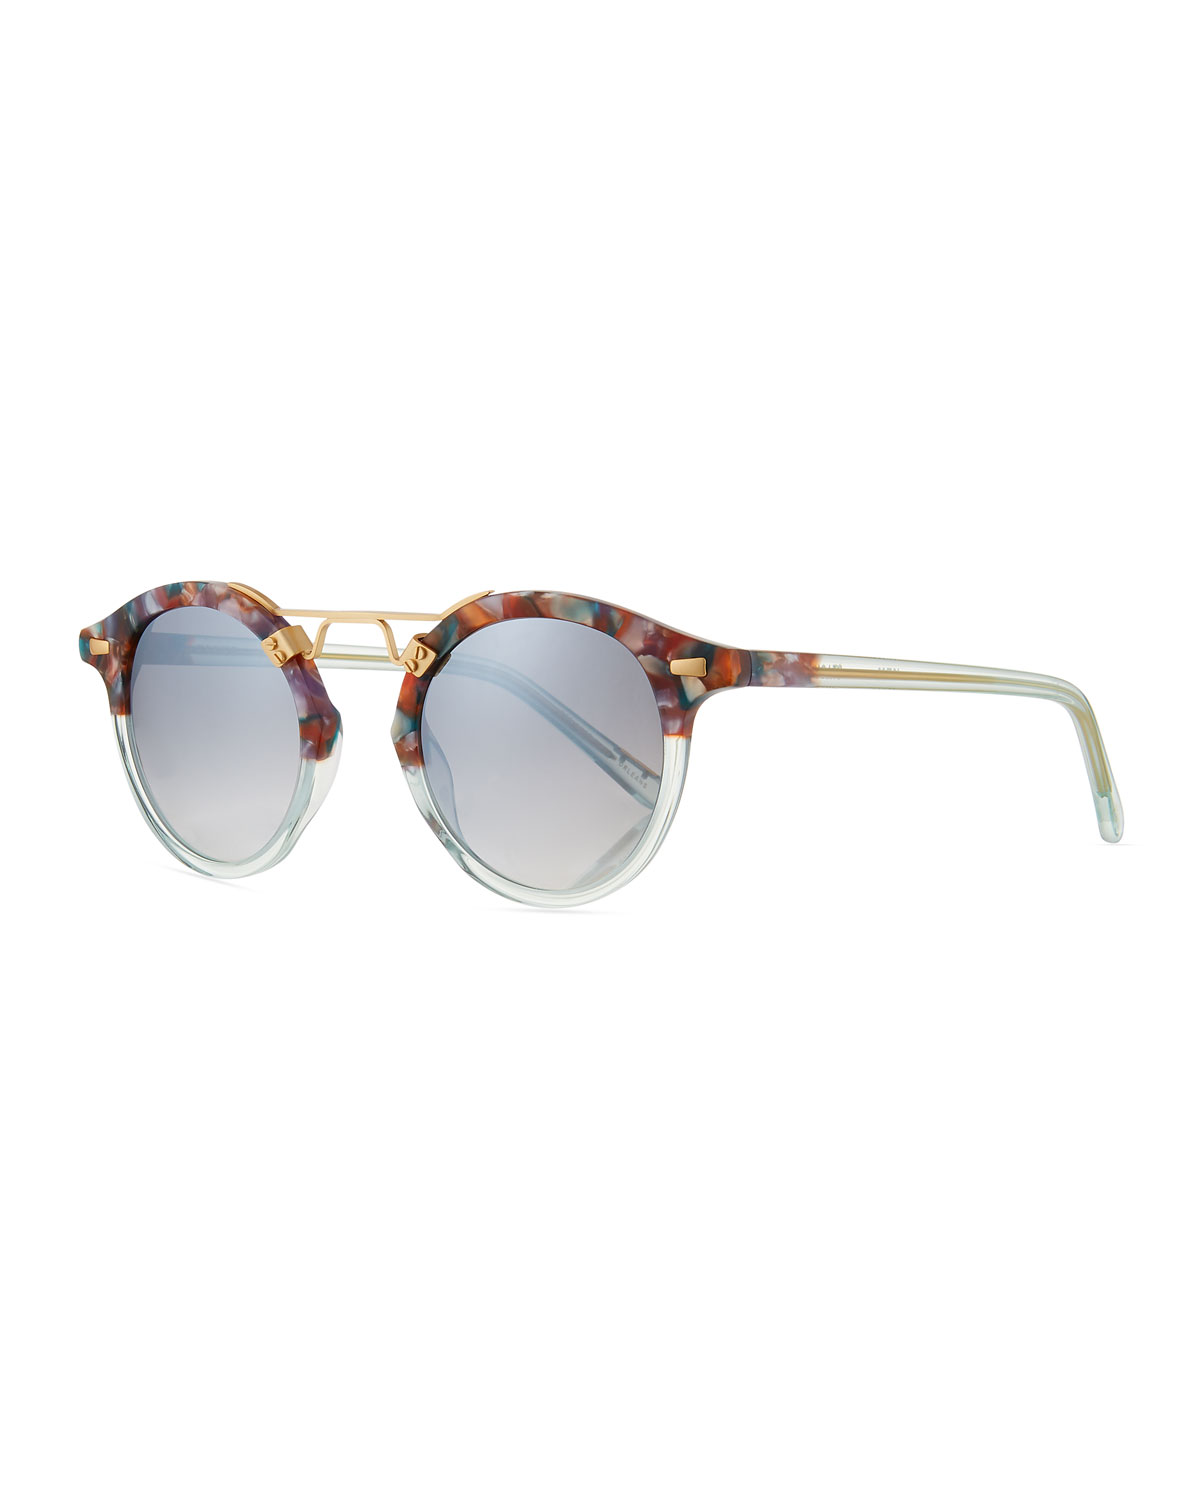 KREWE Women'S St. Louis 24K Mirrored Round Sunglasses, 46Mm in Multi